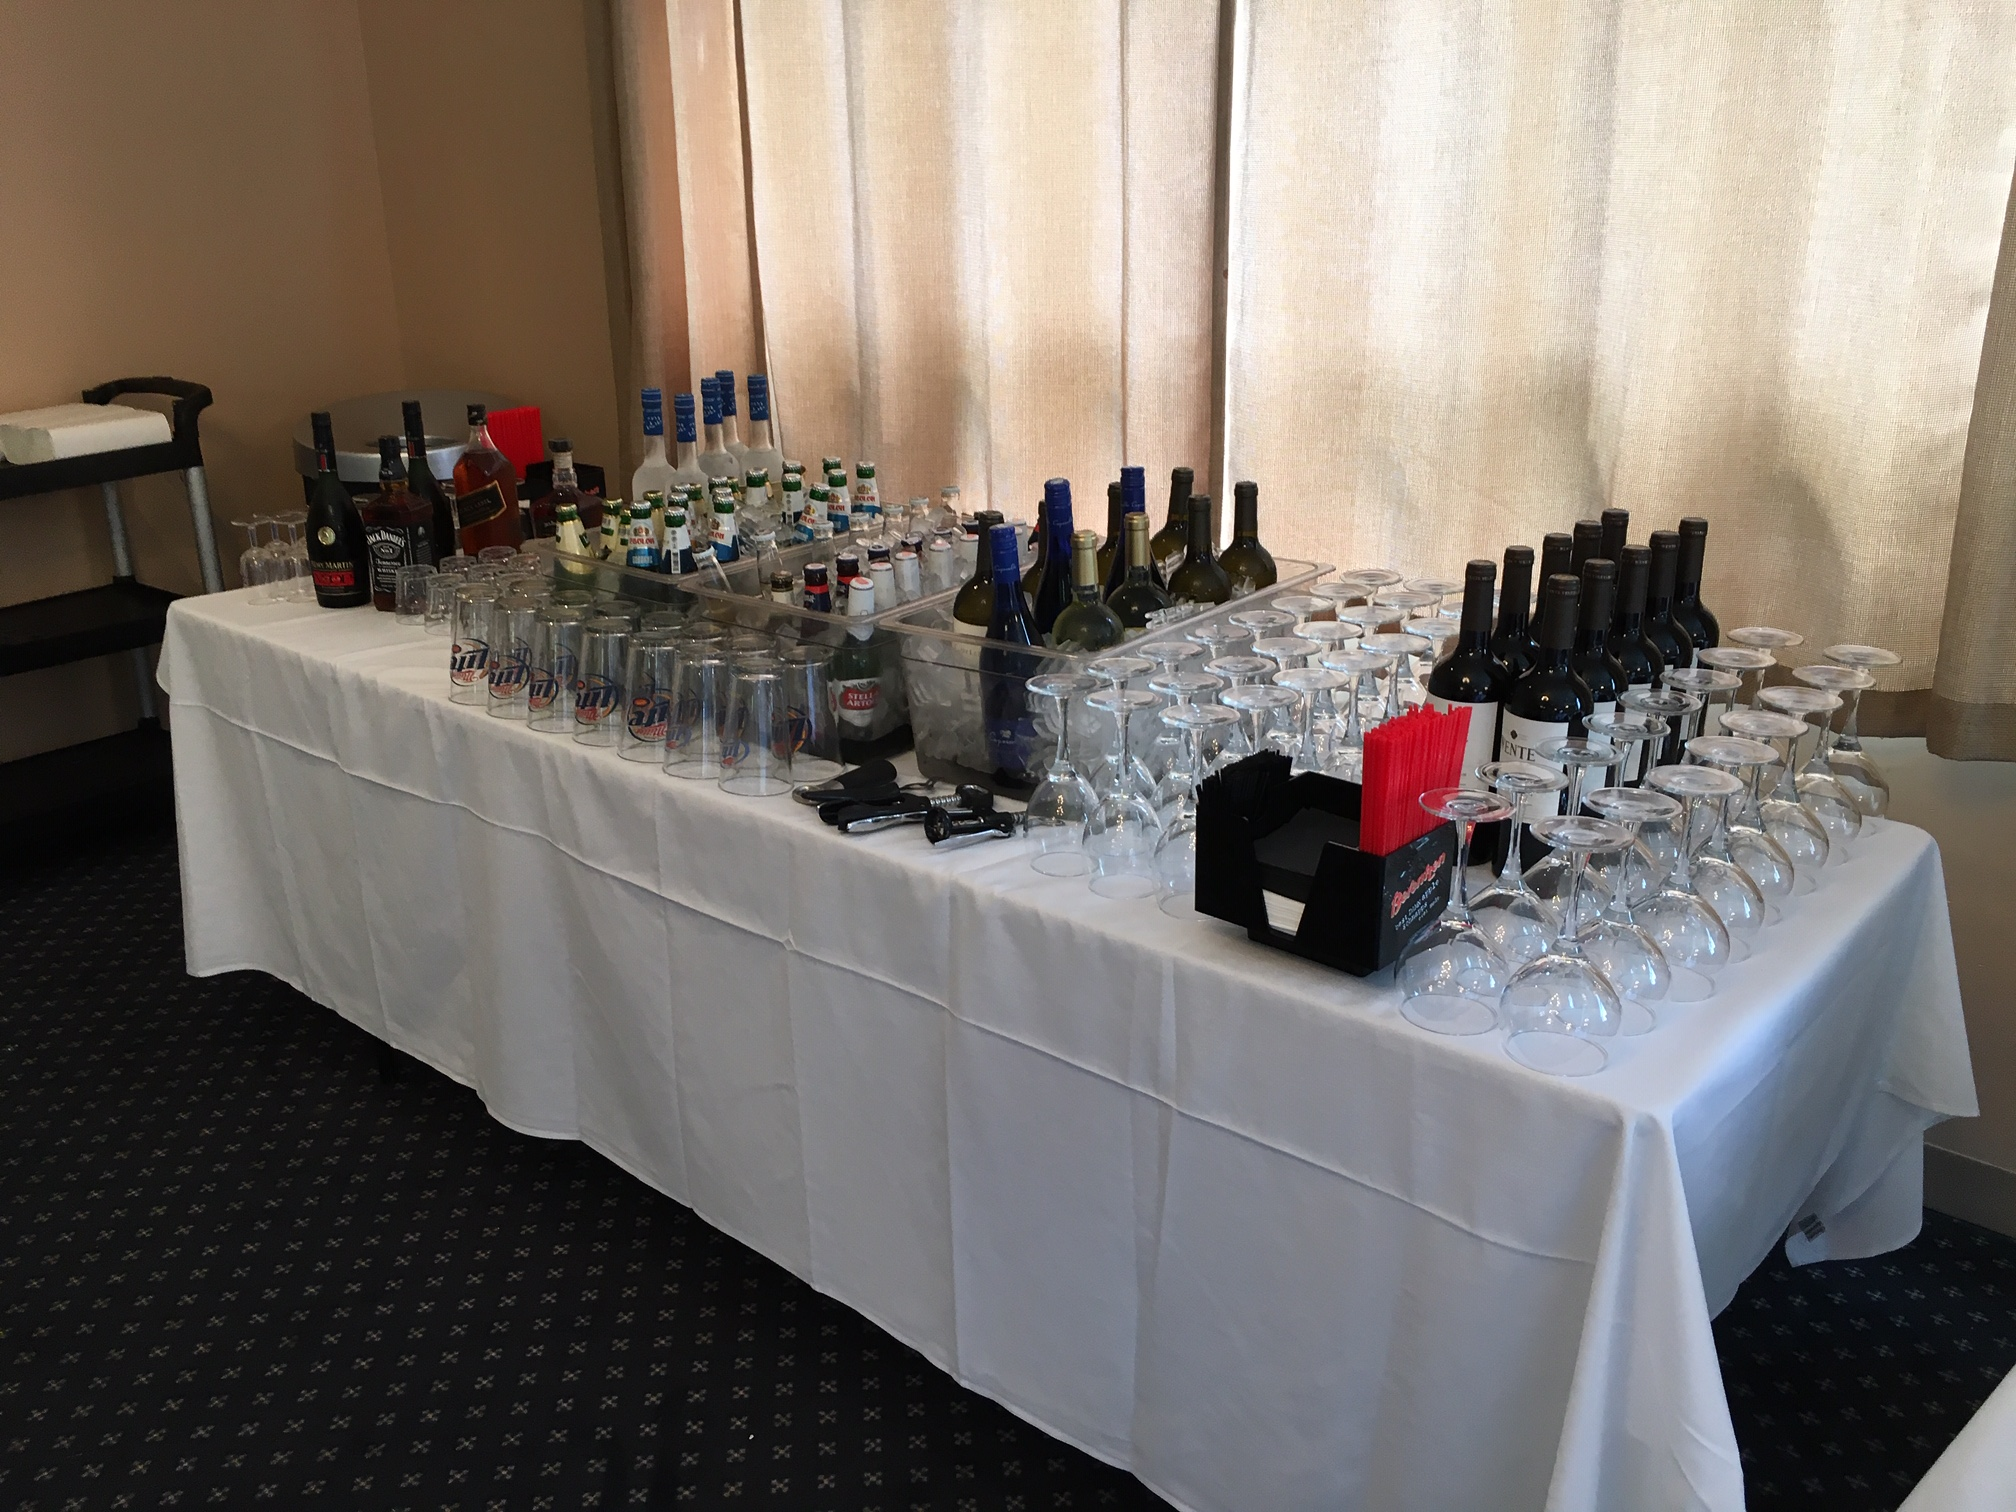 Ukrainian American Cultural Center - Catering and Kitchen wine and drinks